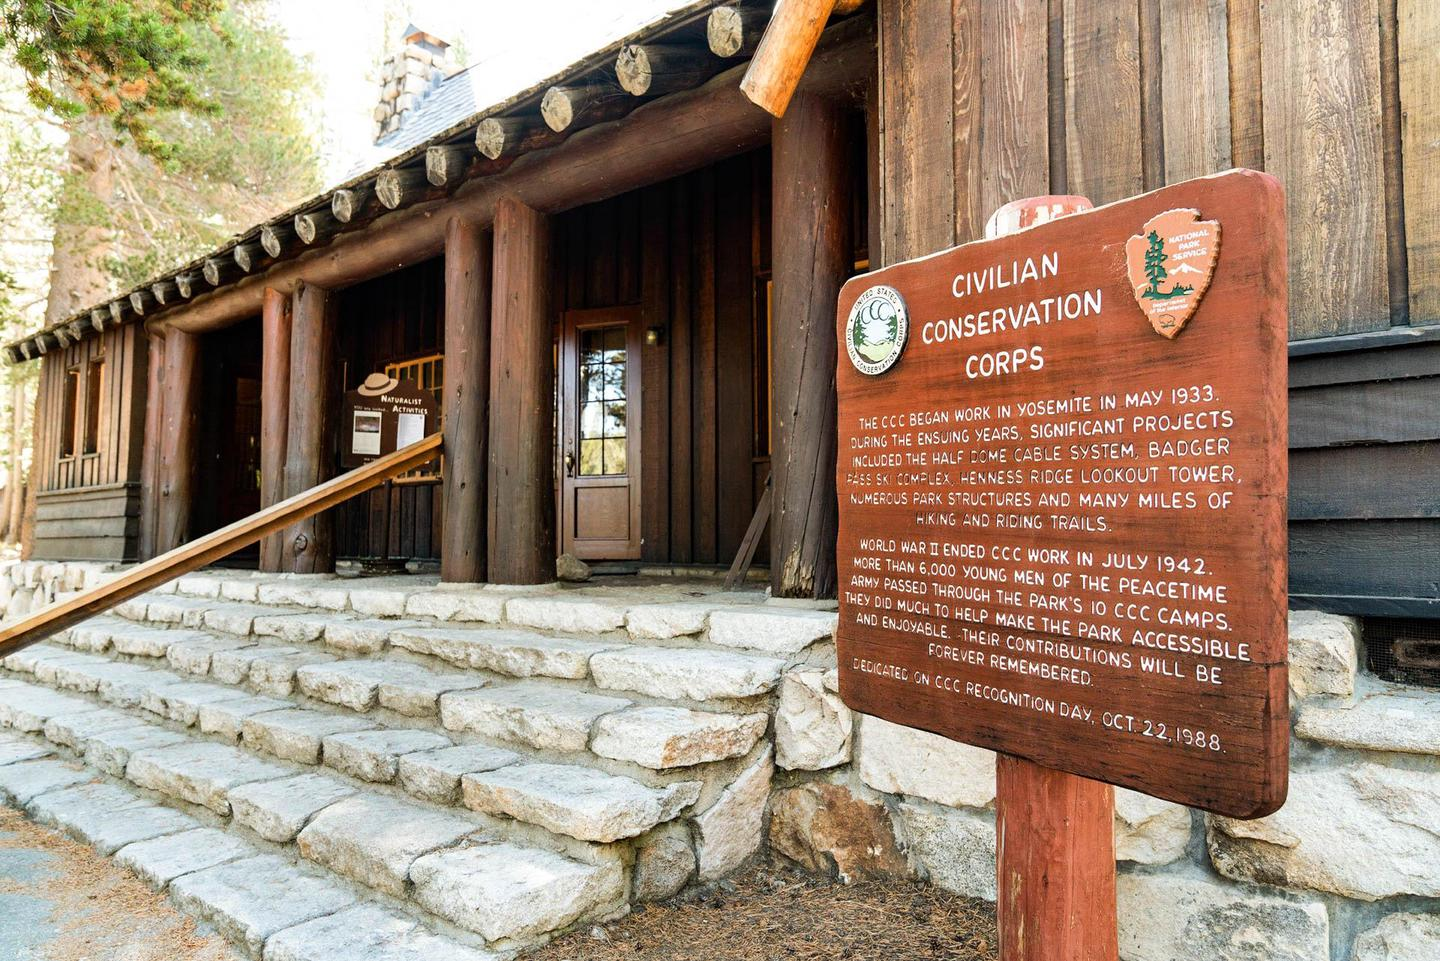 Tuolumne Meadows Visitor Center